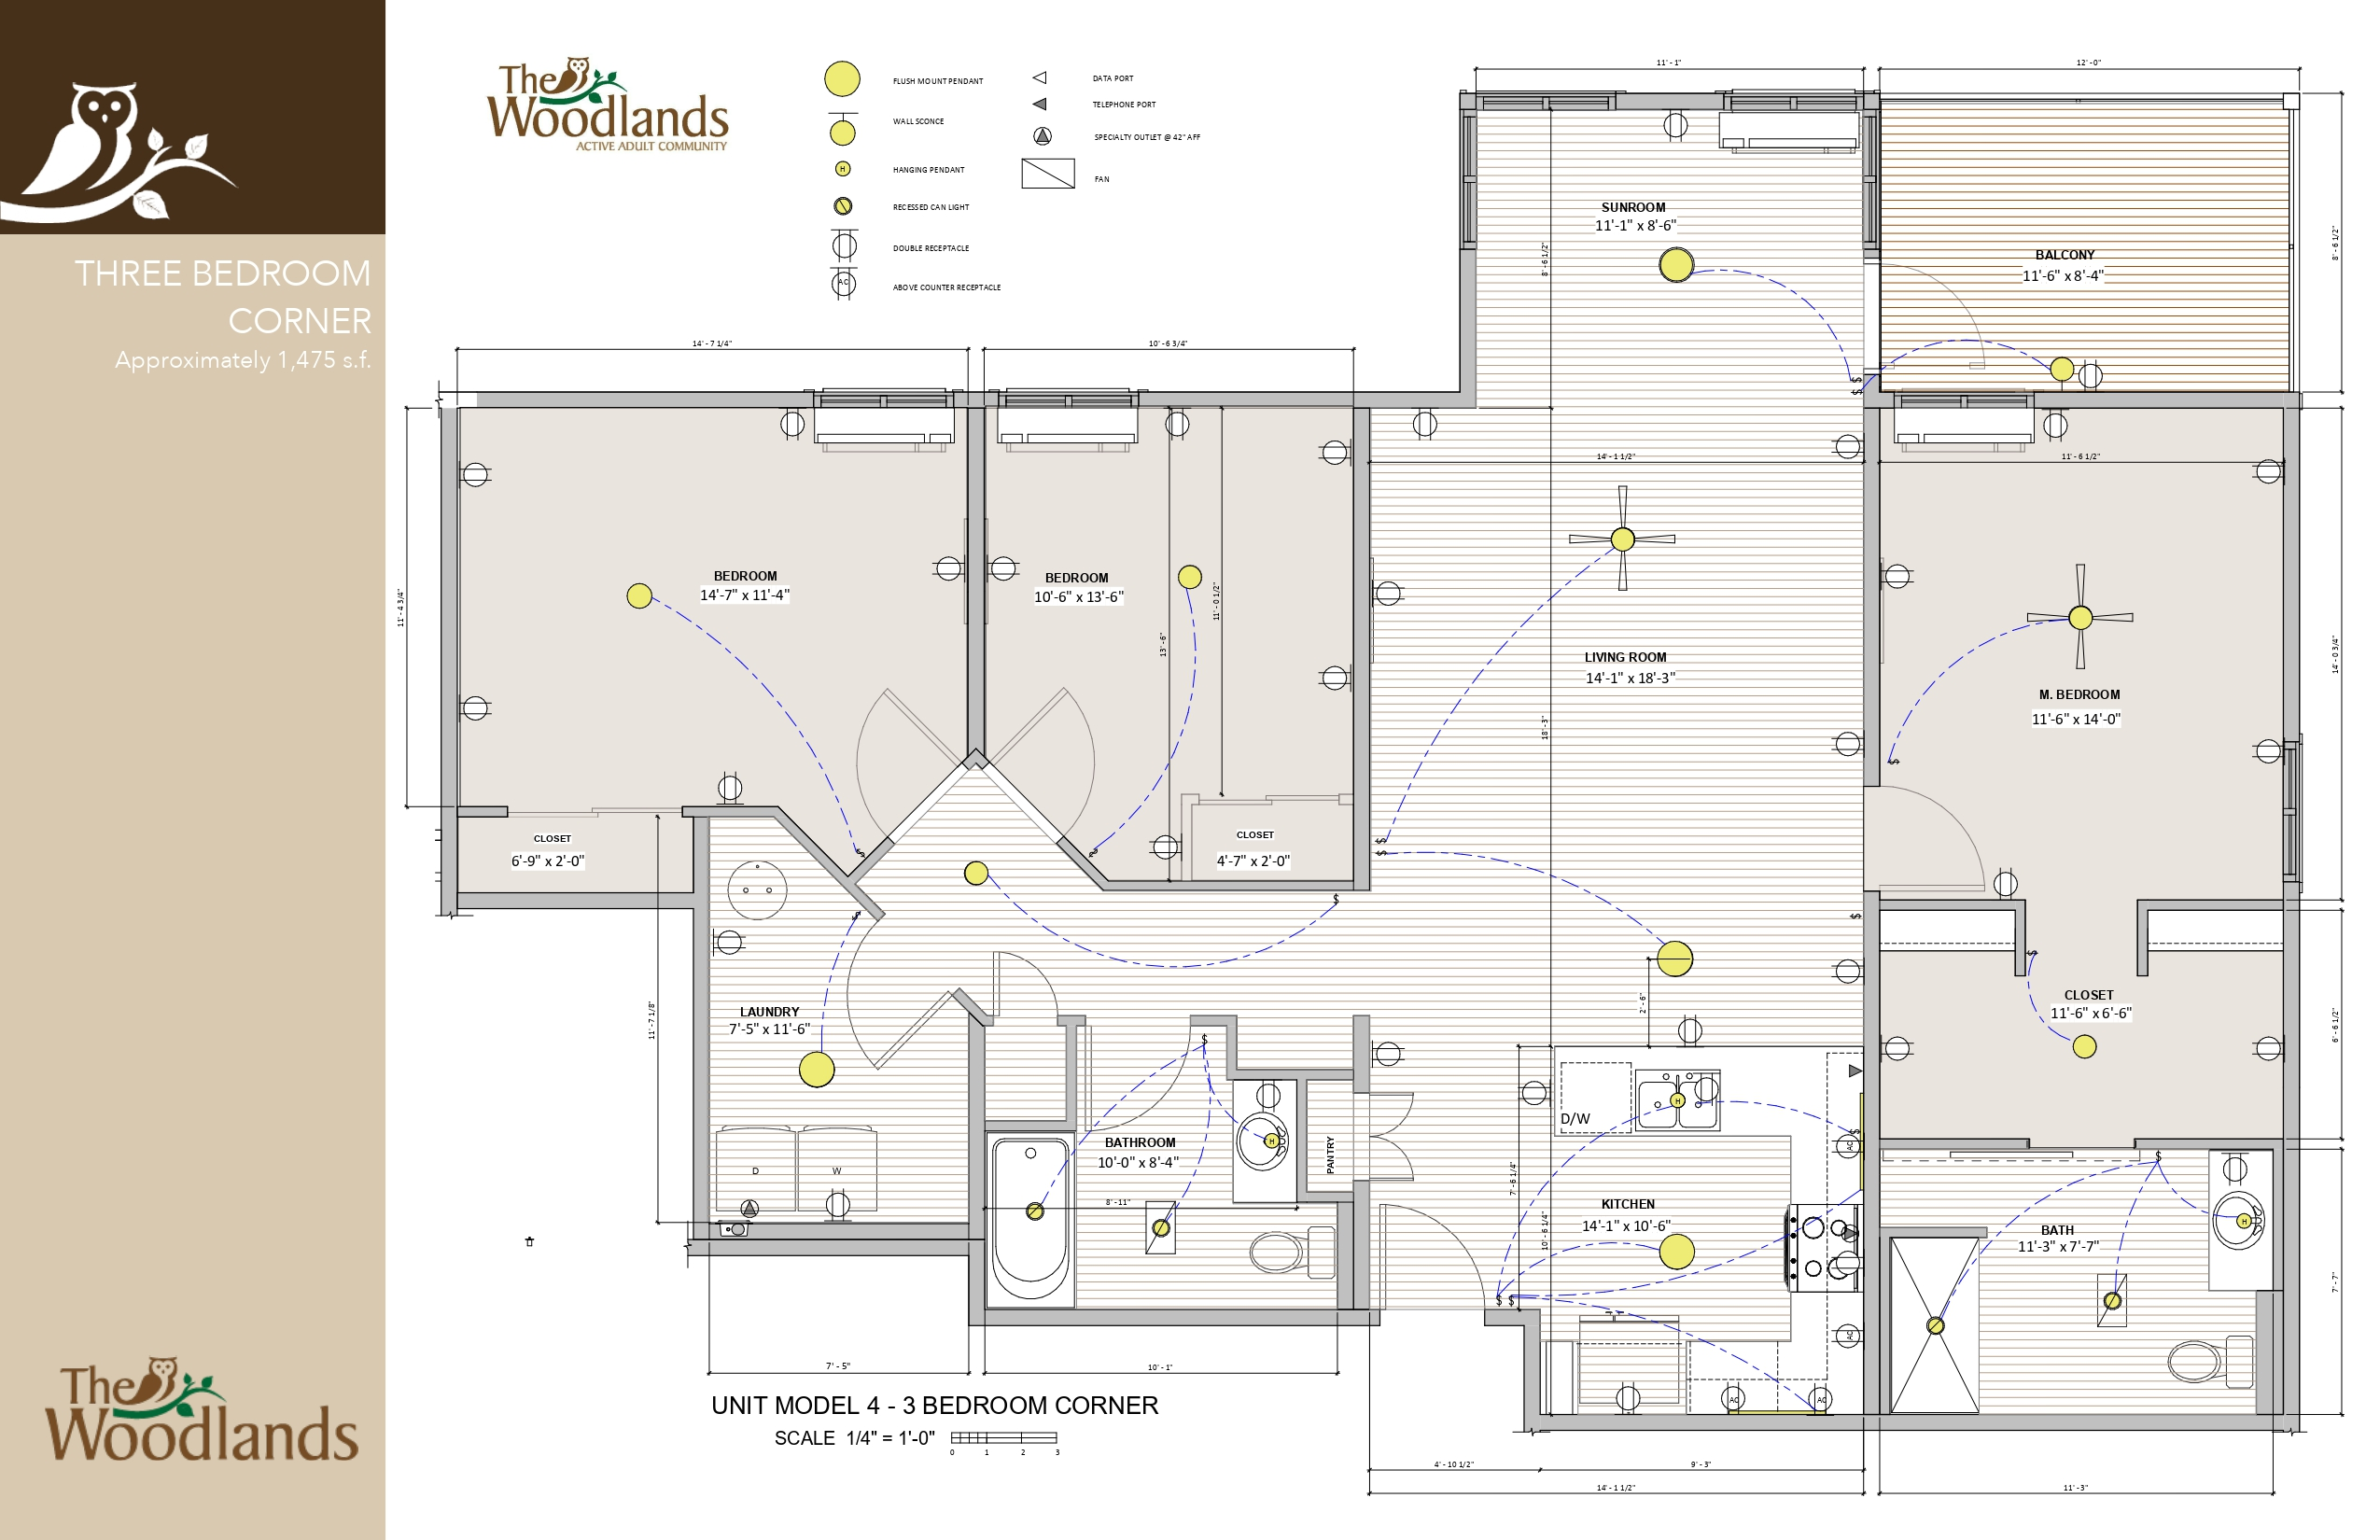 The Woodlands - 3 Bedroom Corner